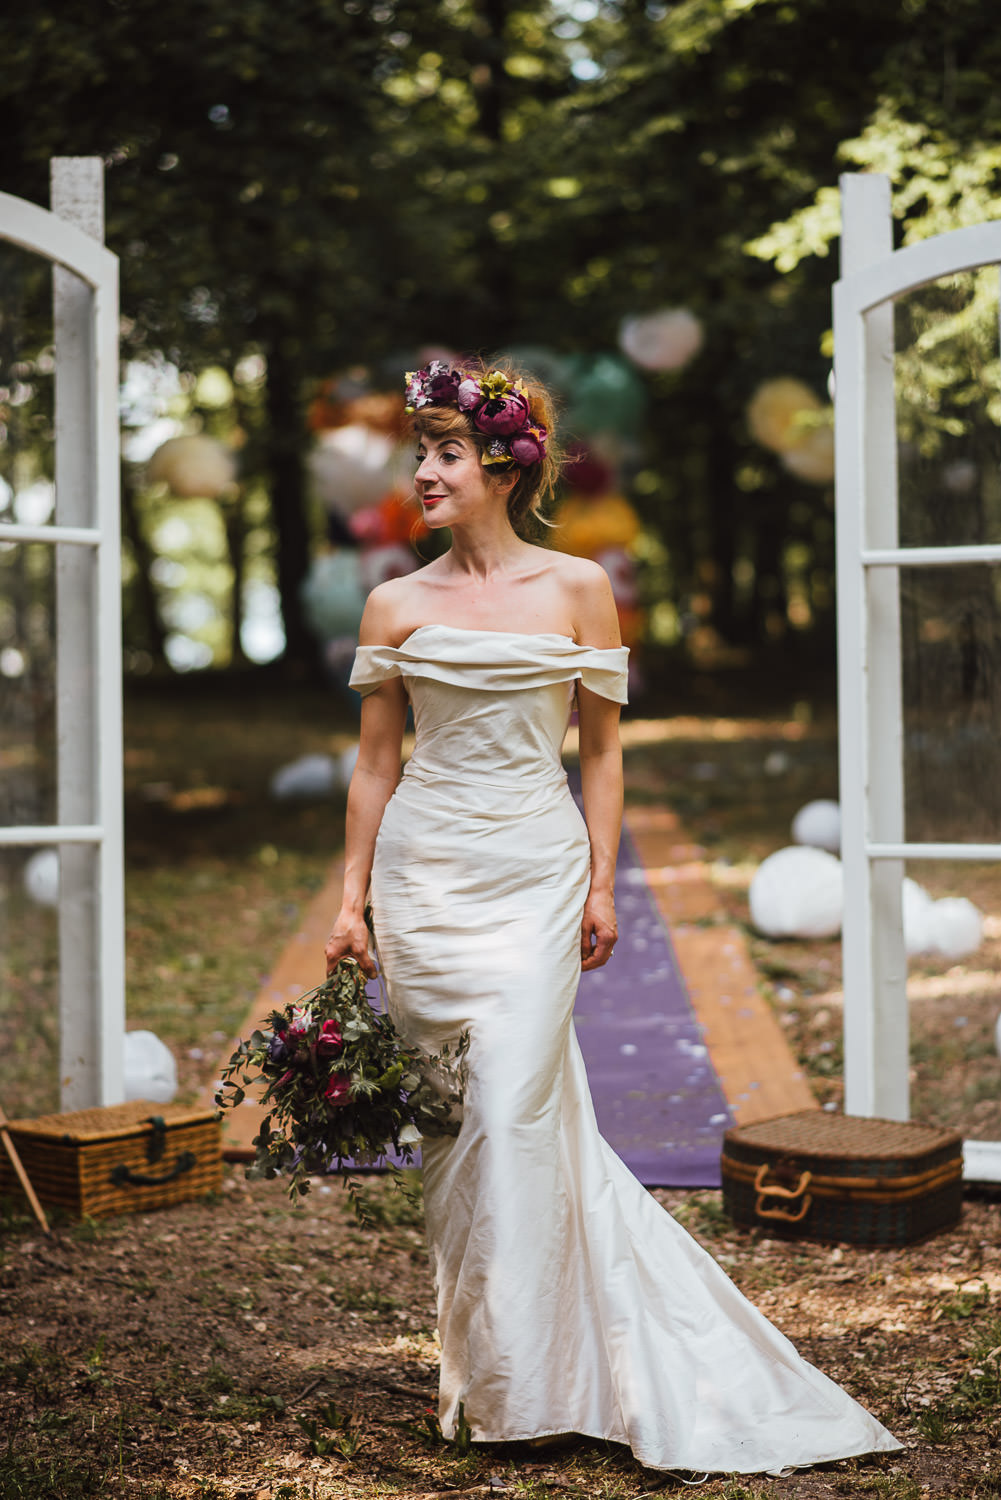 chic french bride in Bordeaux Chateau wedding by creative destination wedding photographer the shannons photography